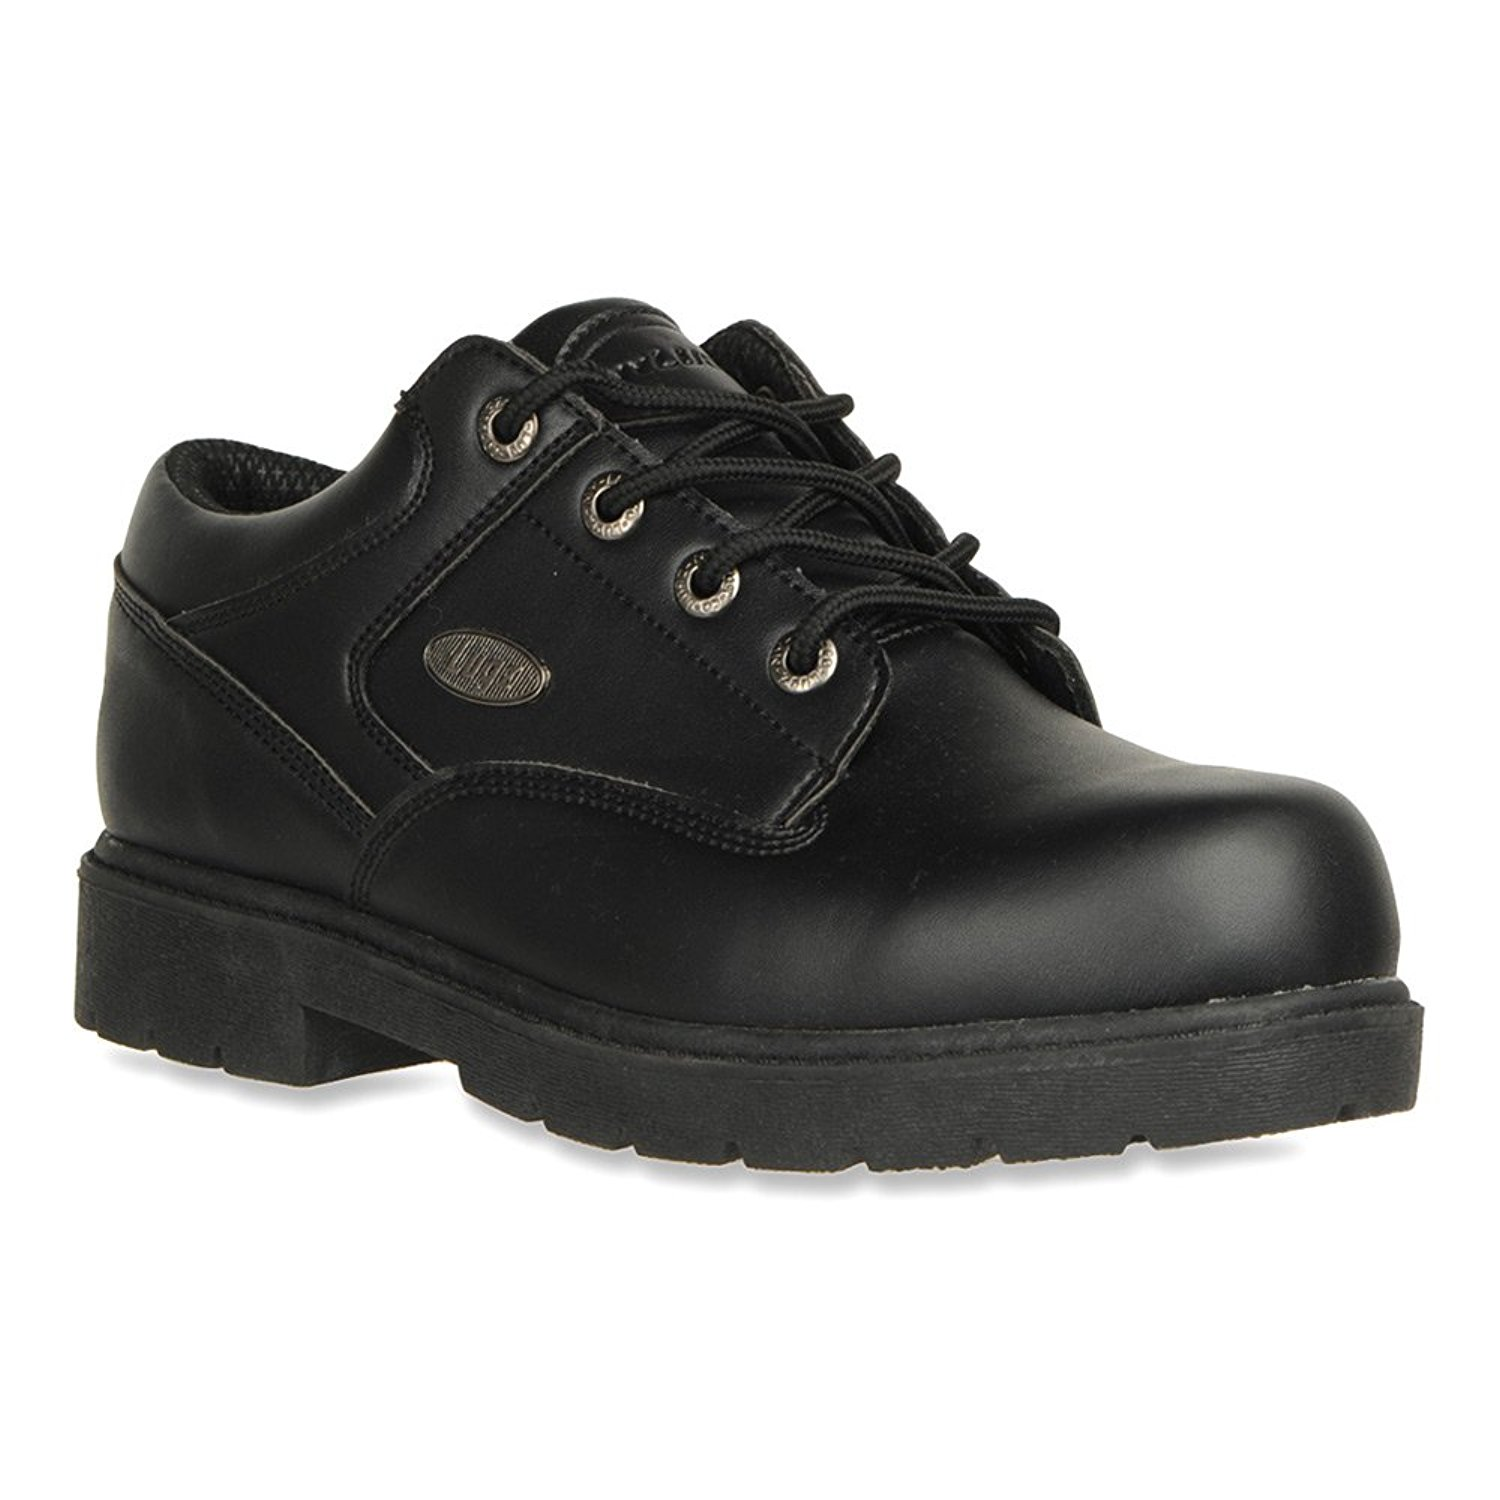 Cheap Lugz Work Boots, find Lugz Work